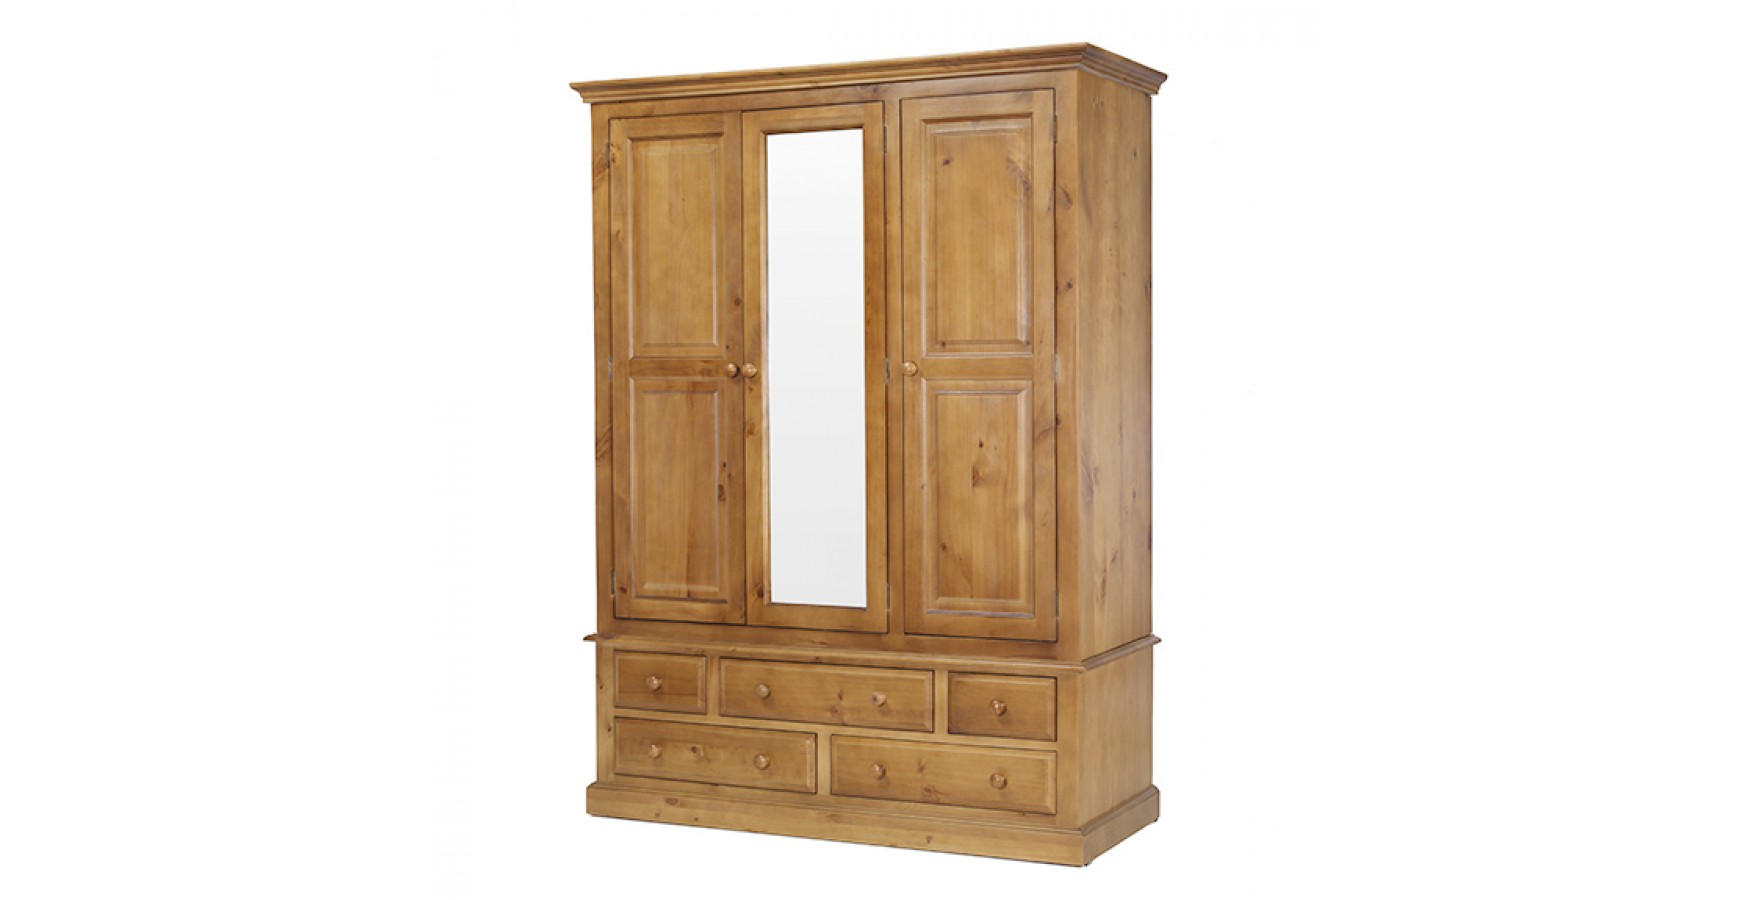 height trim products drawers legacy item with madisonmirror kids door drawer wardrobe madison width threshold mirror classic homeworld